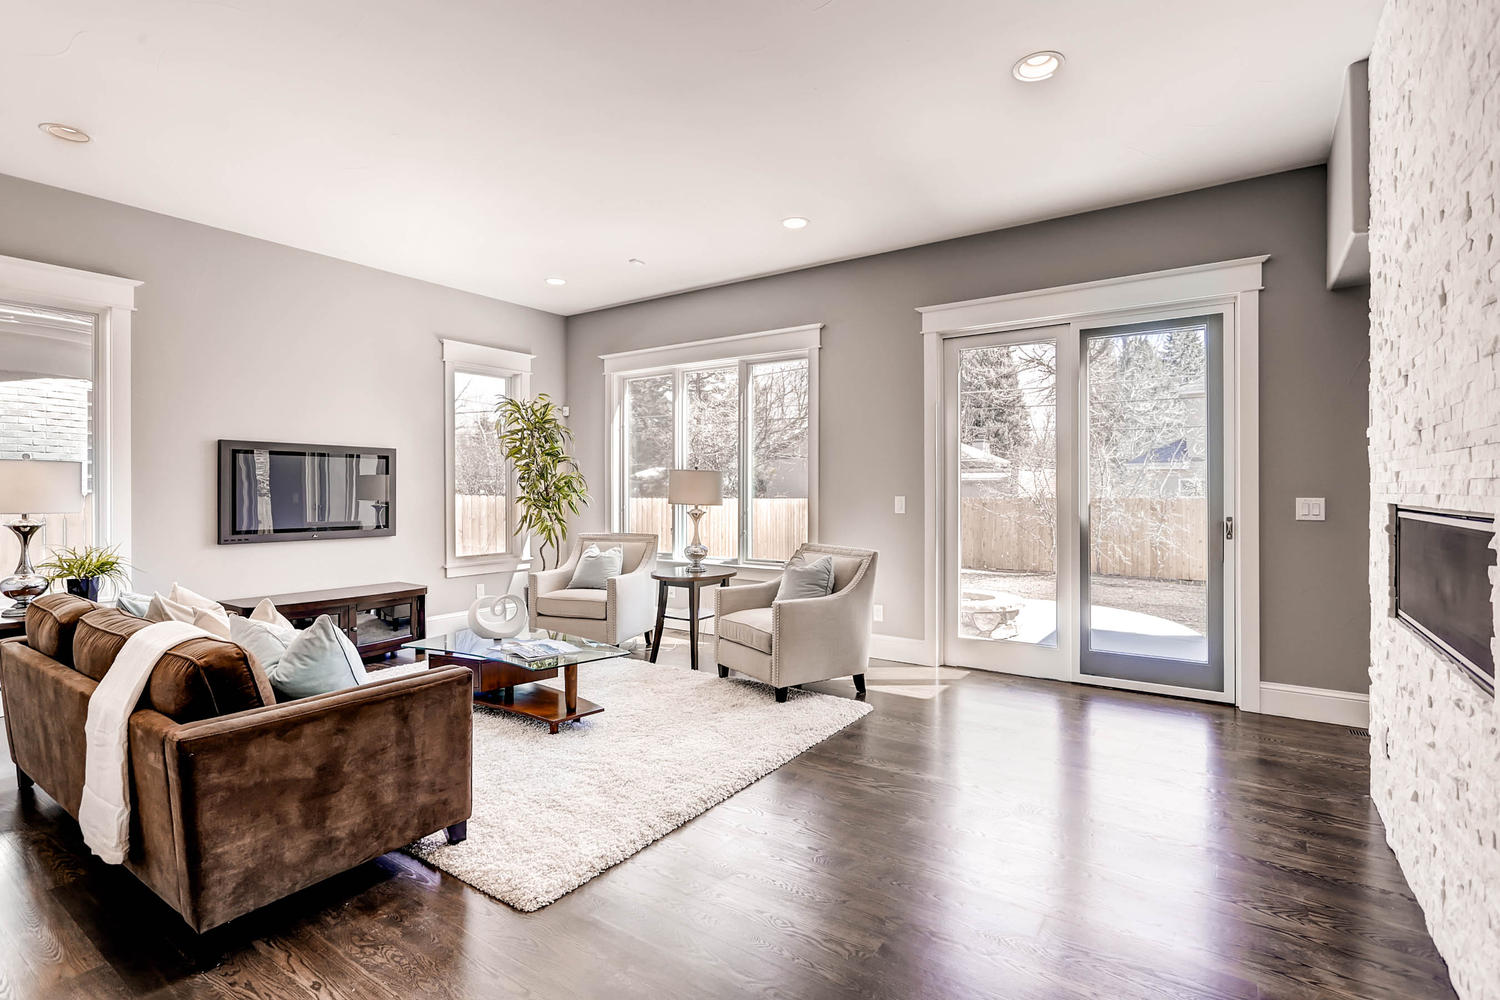 Home Staging Design By White